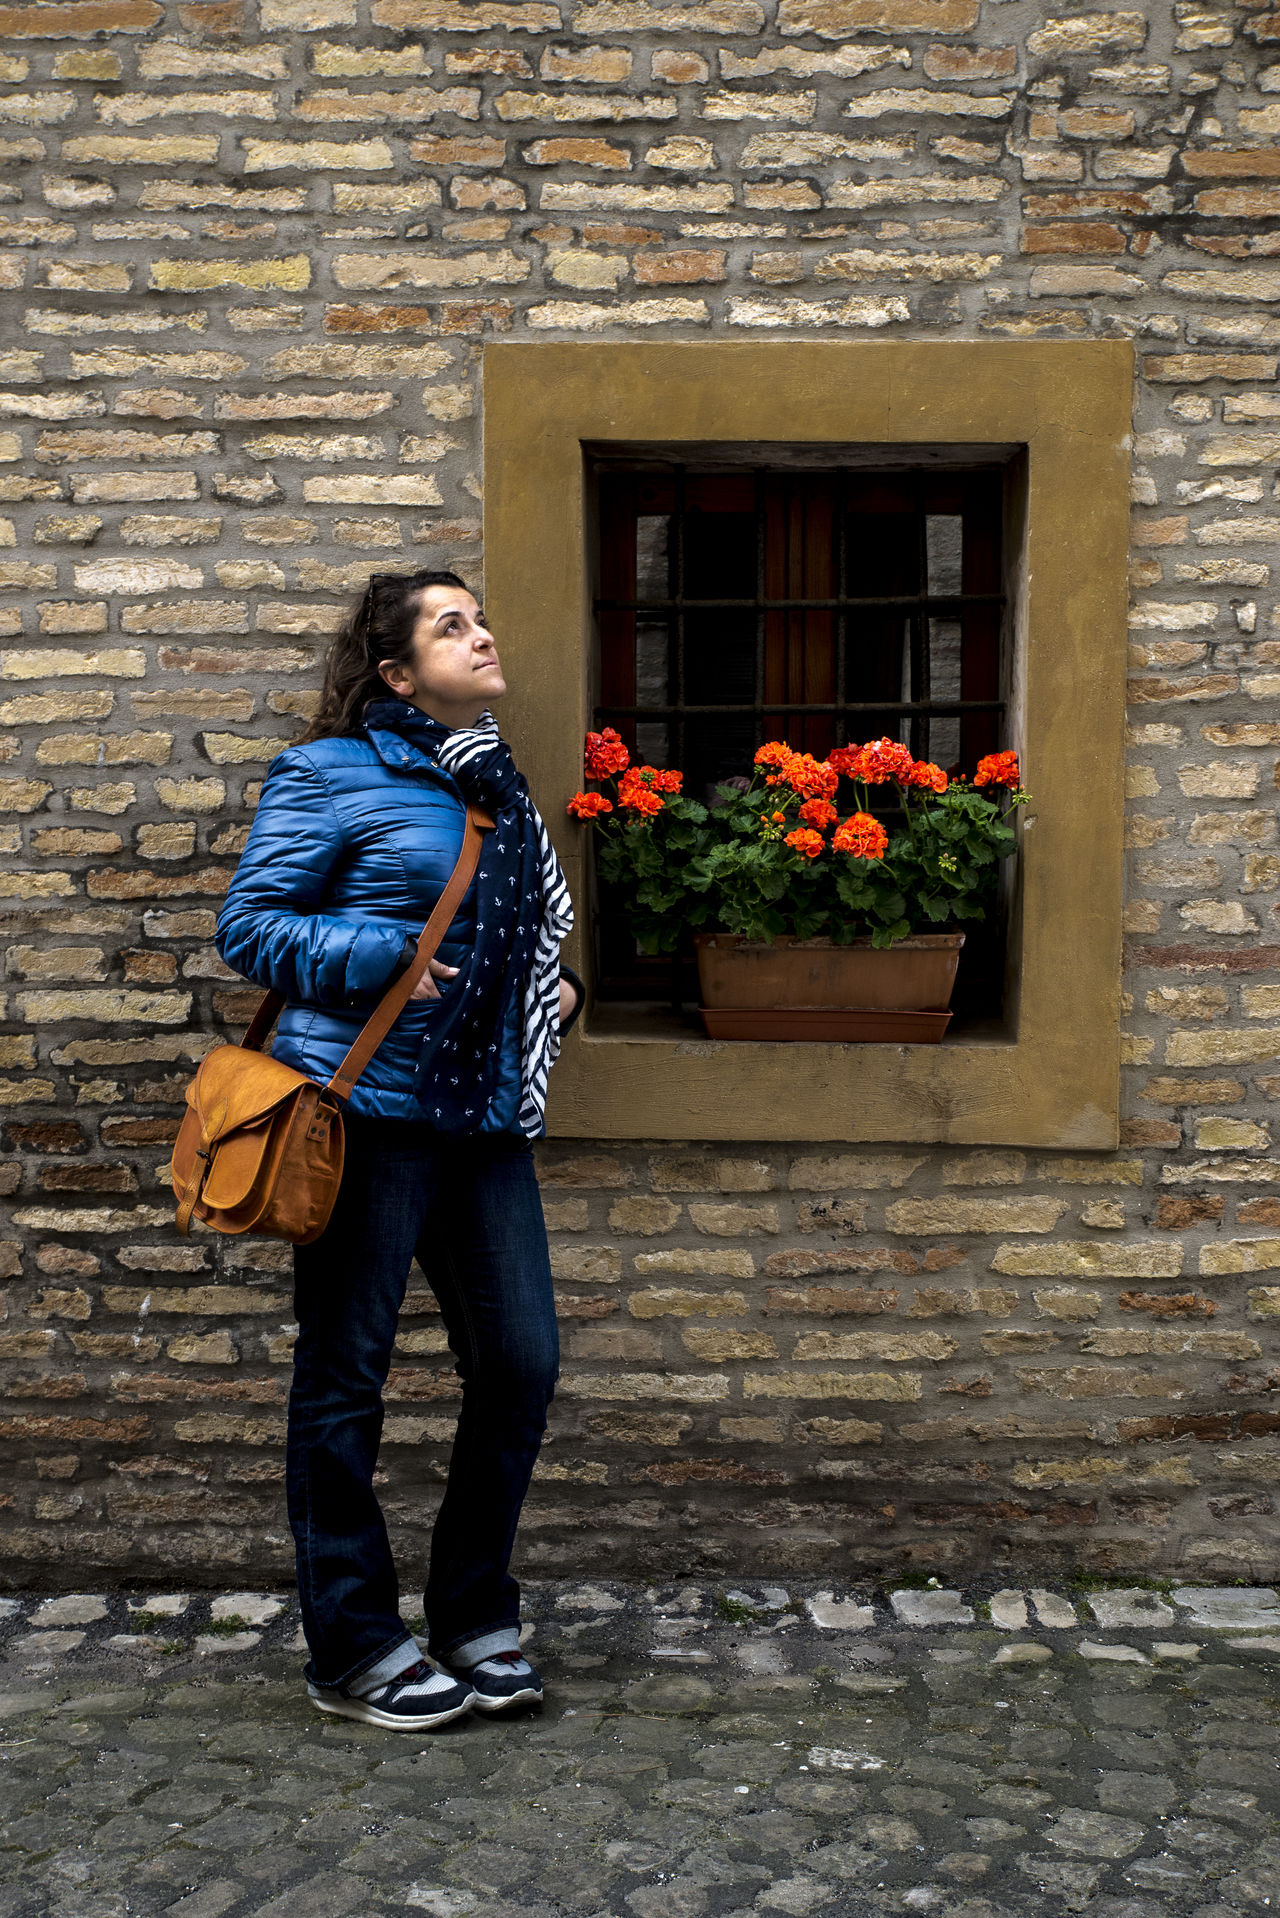 The flowers give beneficial vibrations Brick Wall Bricks Casual Clothing Design Flower Flowers Italy Old Buildings Old Town One Person Portrait Portrait Of A Friend Portrait Of A Woman Portrait Photography Portraits Streetphoto_color Streetphotography Thinking Travel Travel Destinations Travel Photography Walking Around Wall Woman Woman Portrait